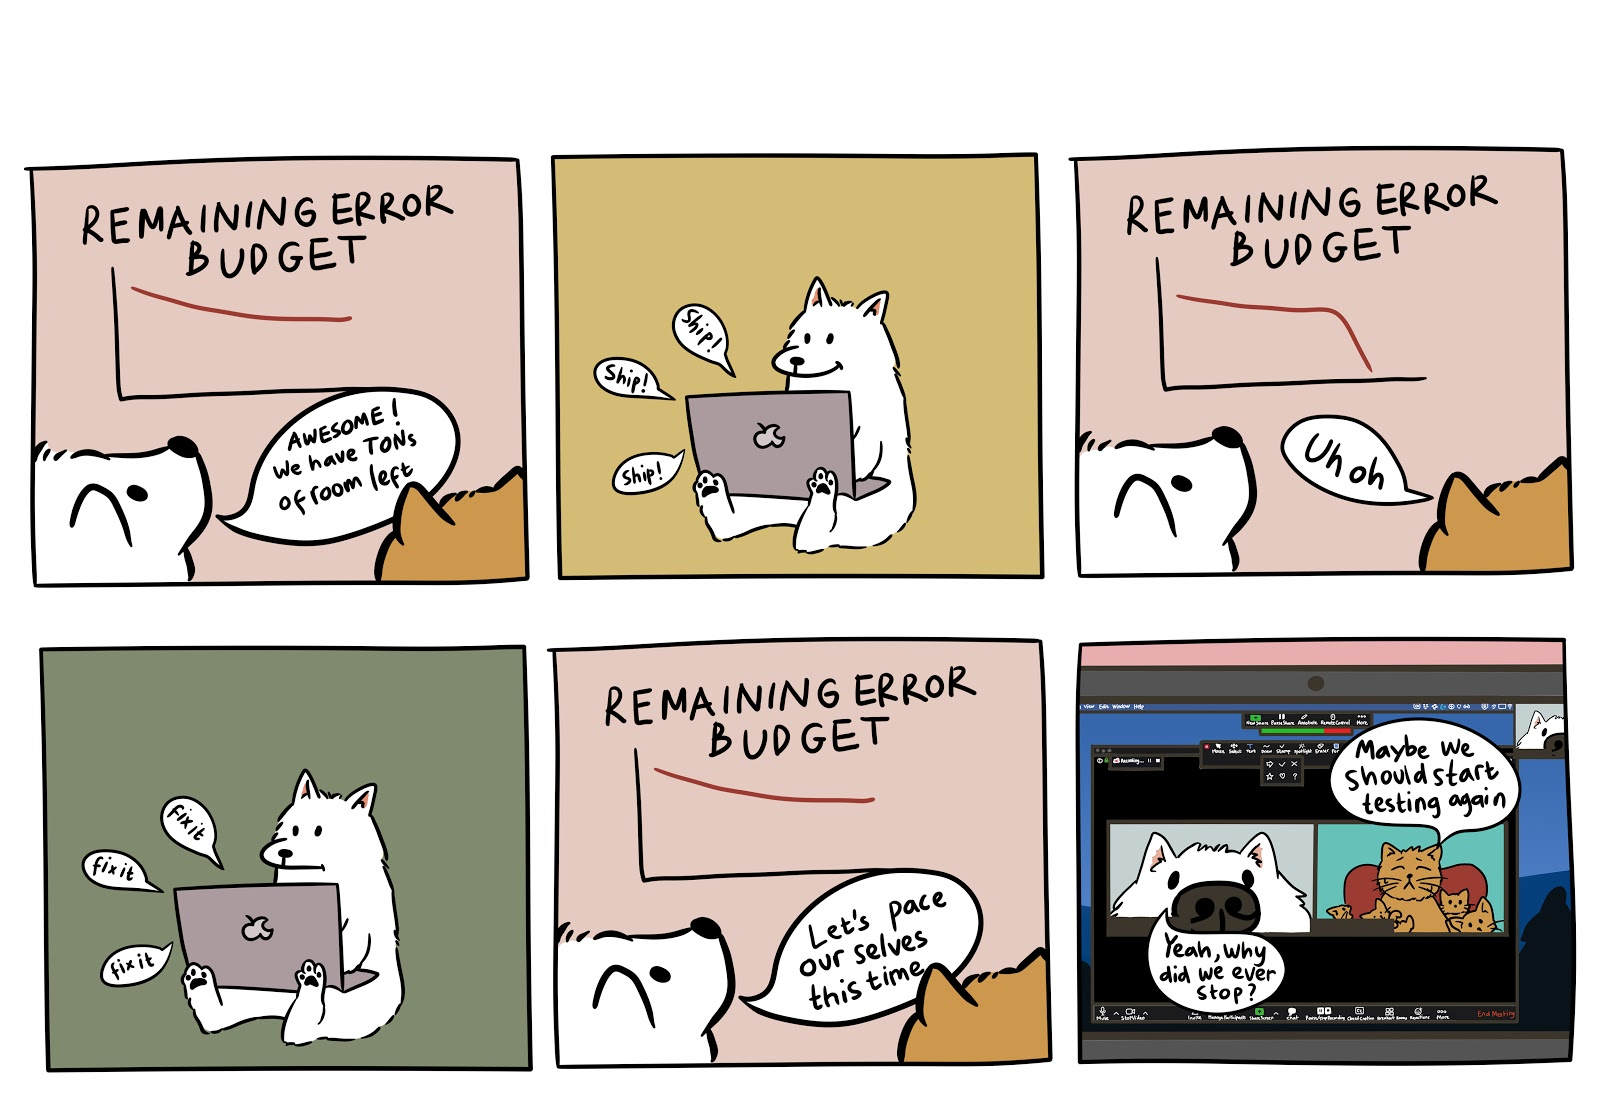 """Comic with white dog SRE. Dog ships a bunch of new features without testing and error budget decreases rapidly! Dog says to coworker, """"Huh, I guess we should start testing again."""""""